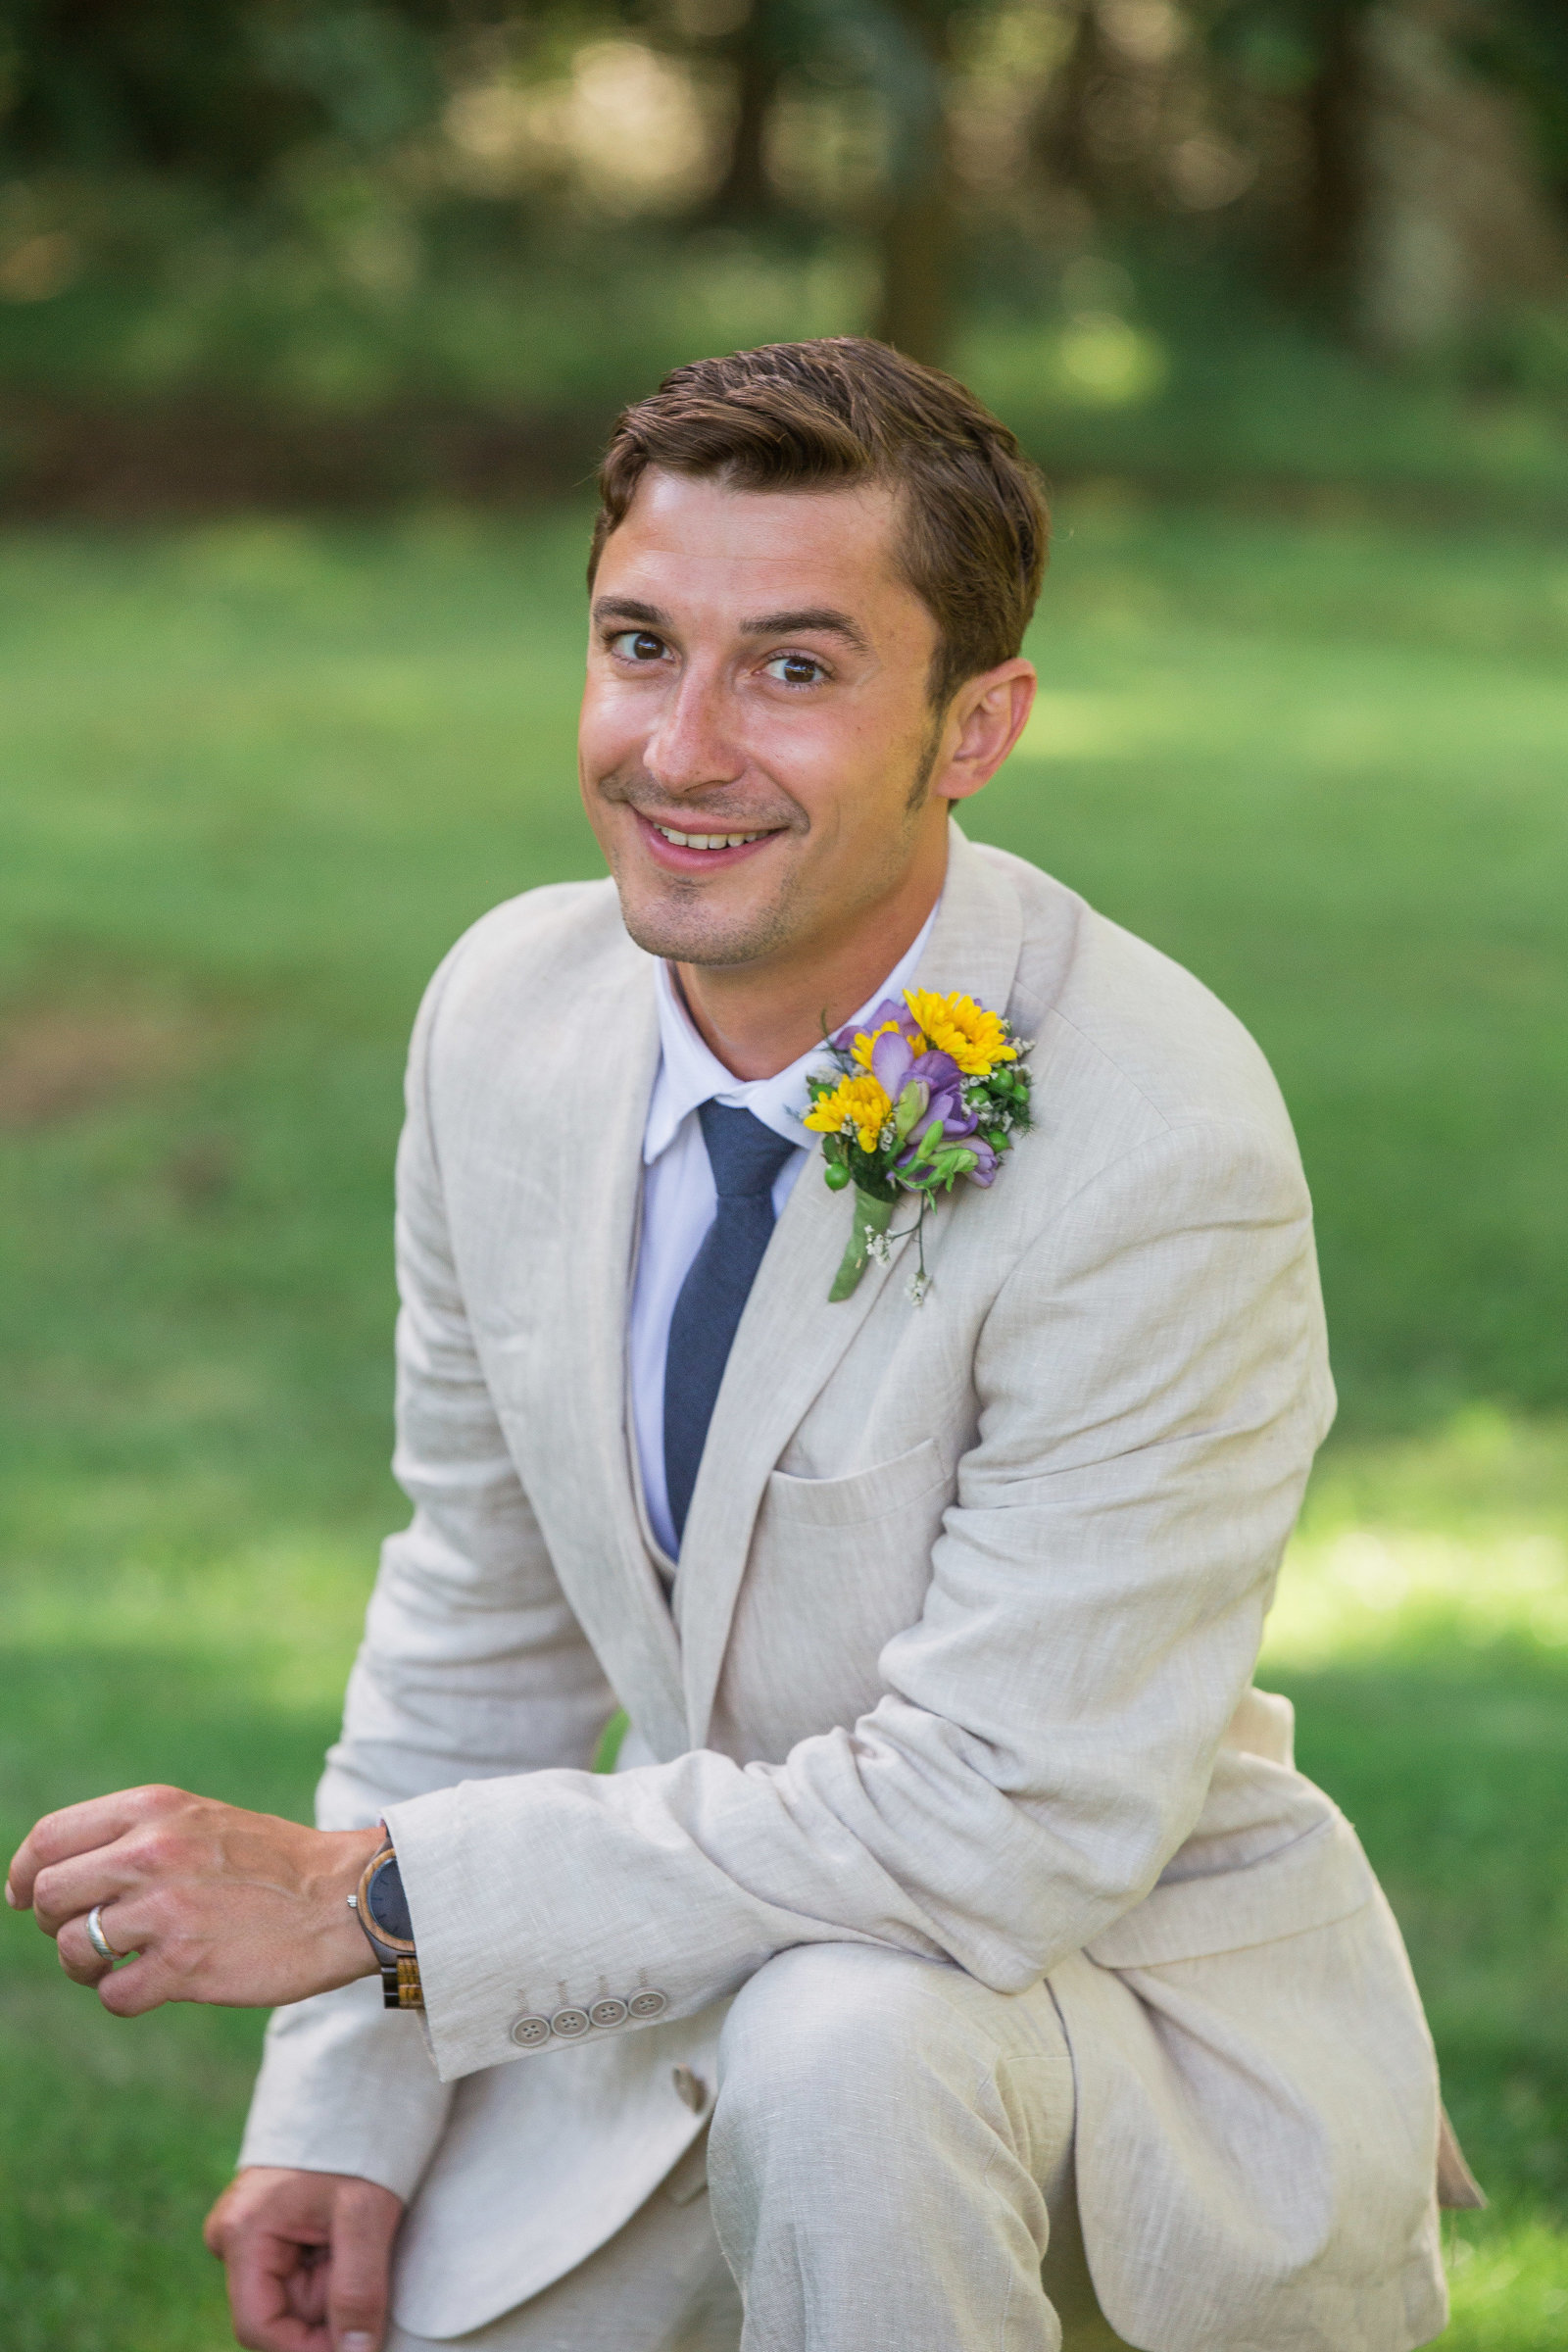 groom in a tan suit kneels on the grass